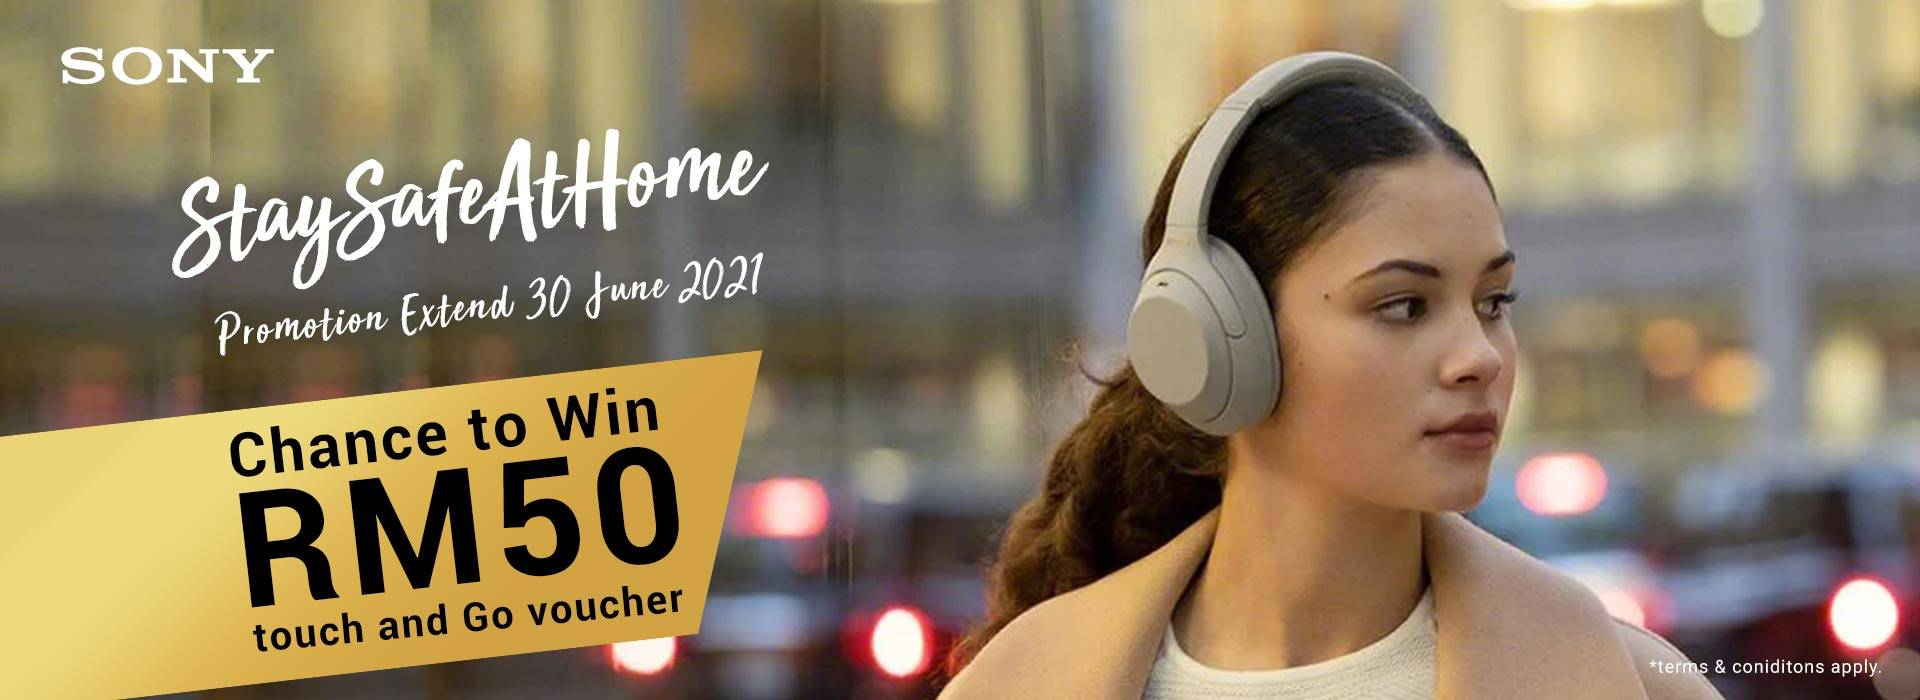 Sony Stay Safe at Home 30 June